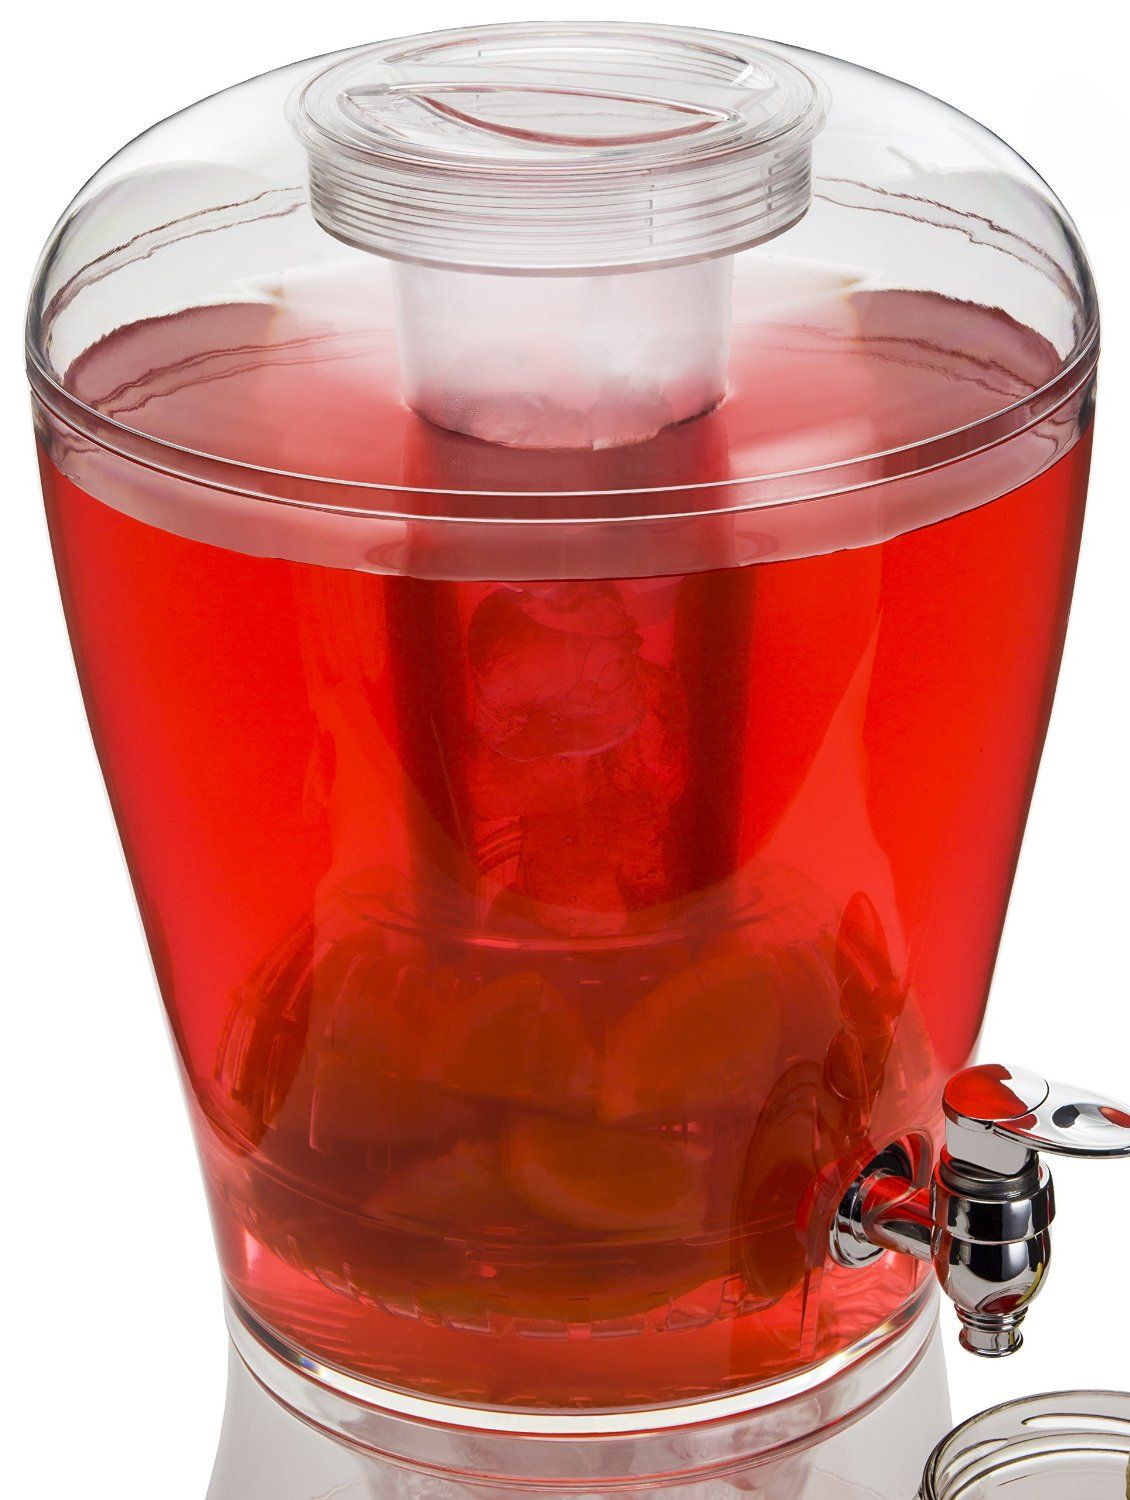 Andrew James 8 litre / 14 pints drinks dispenser with